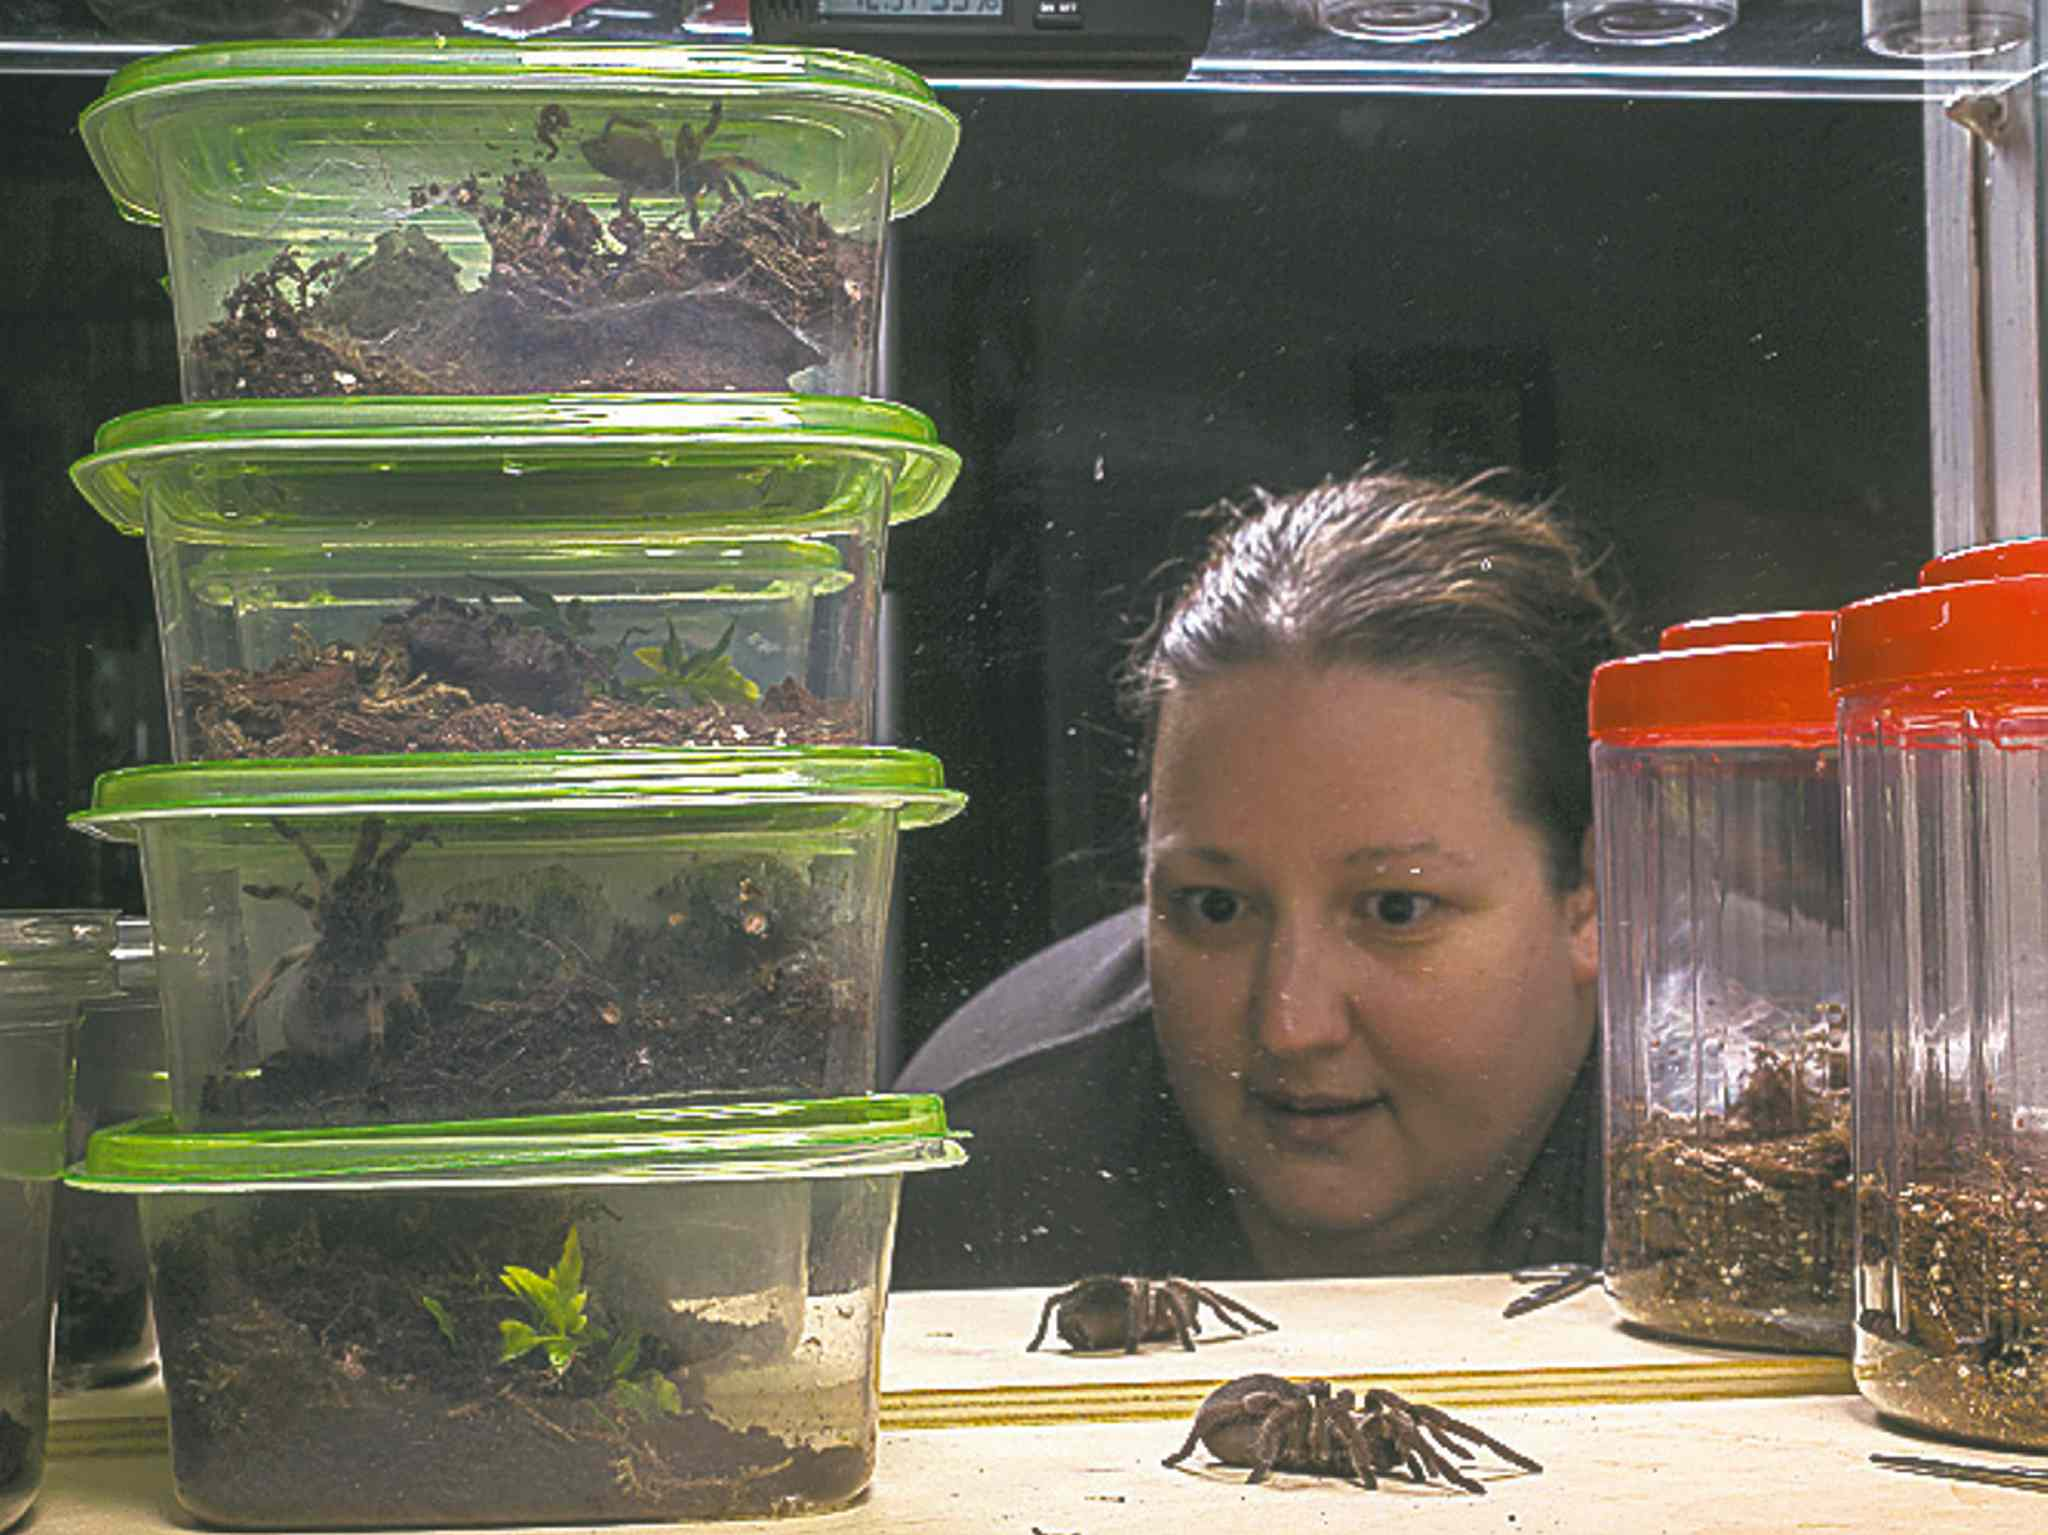 AP Photo/Damian DovarganesDee Reynolds watches one of the 50 tarantulas she keeps as pets in her home in Los Angeles.